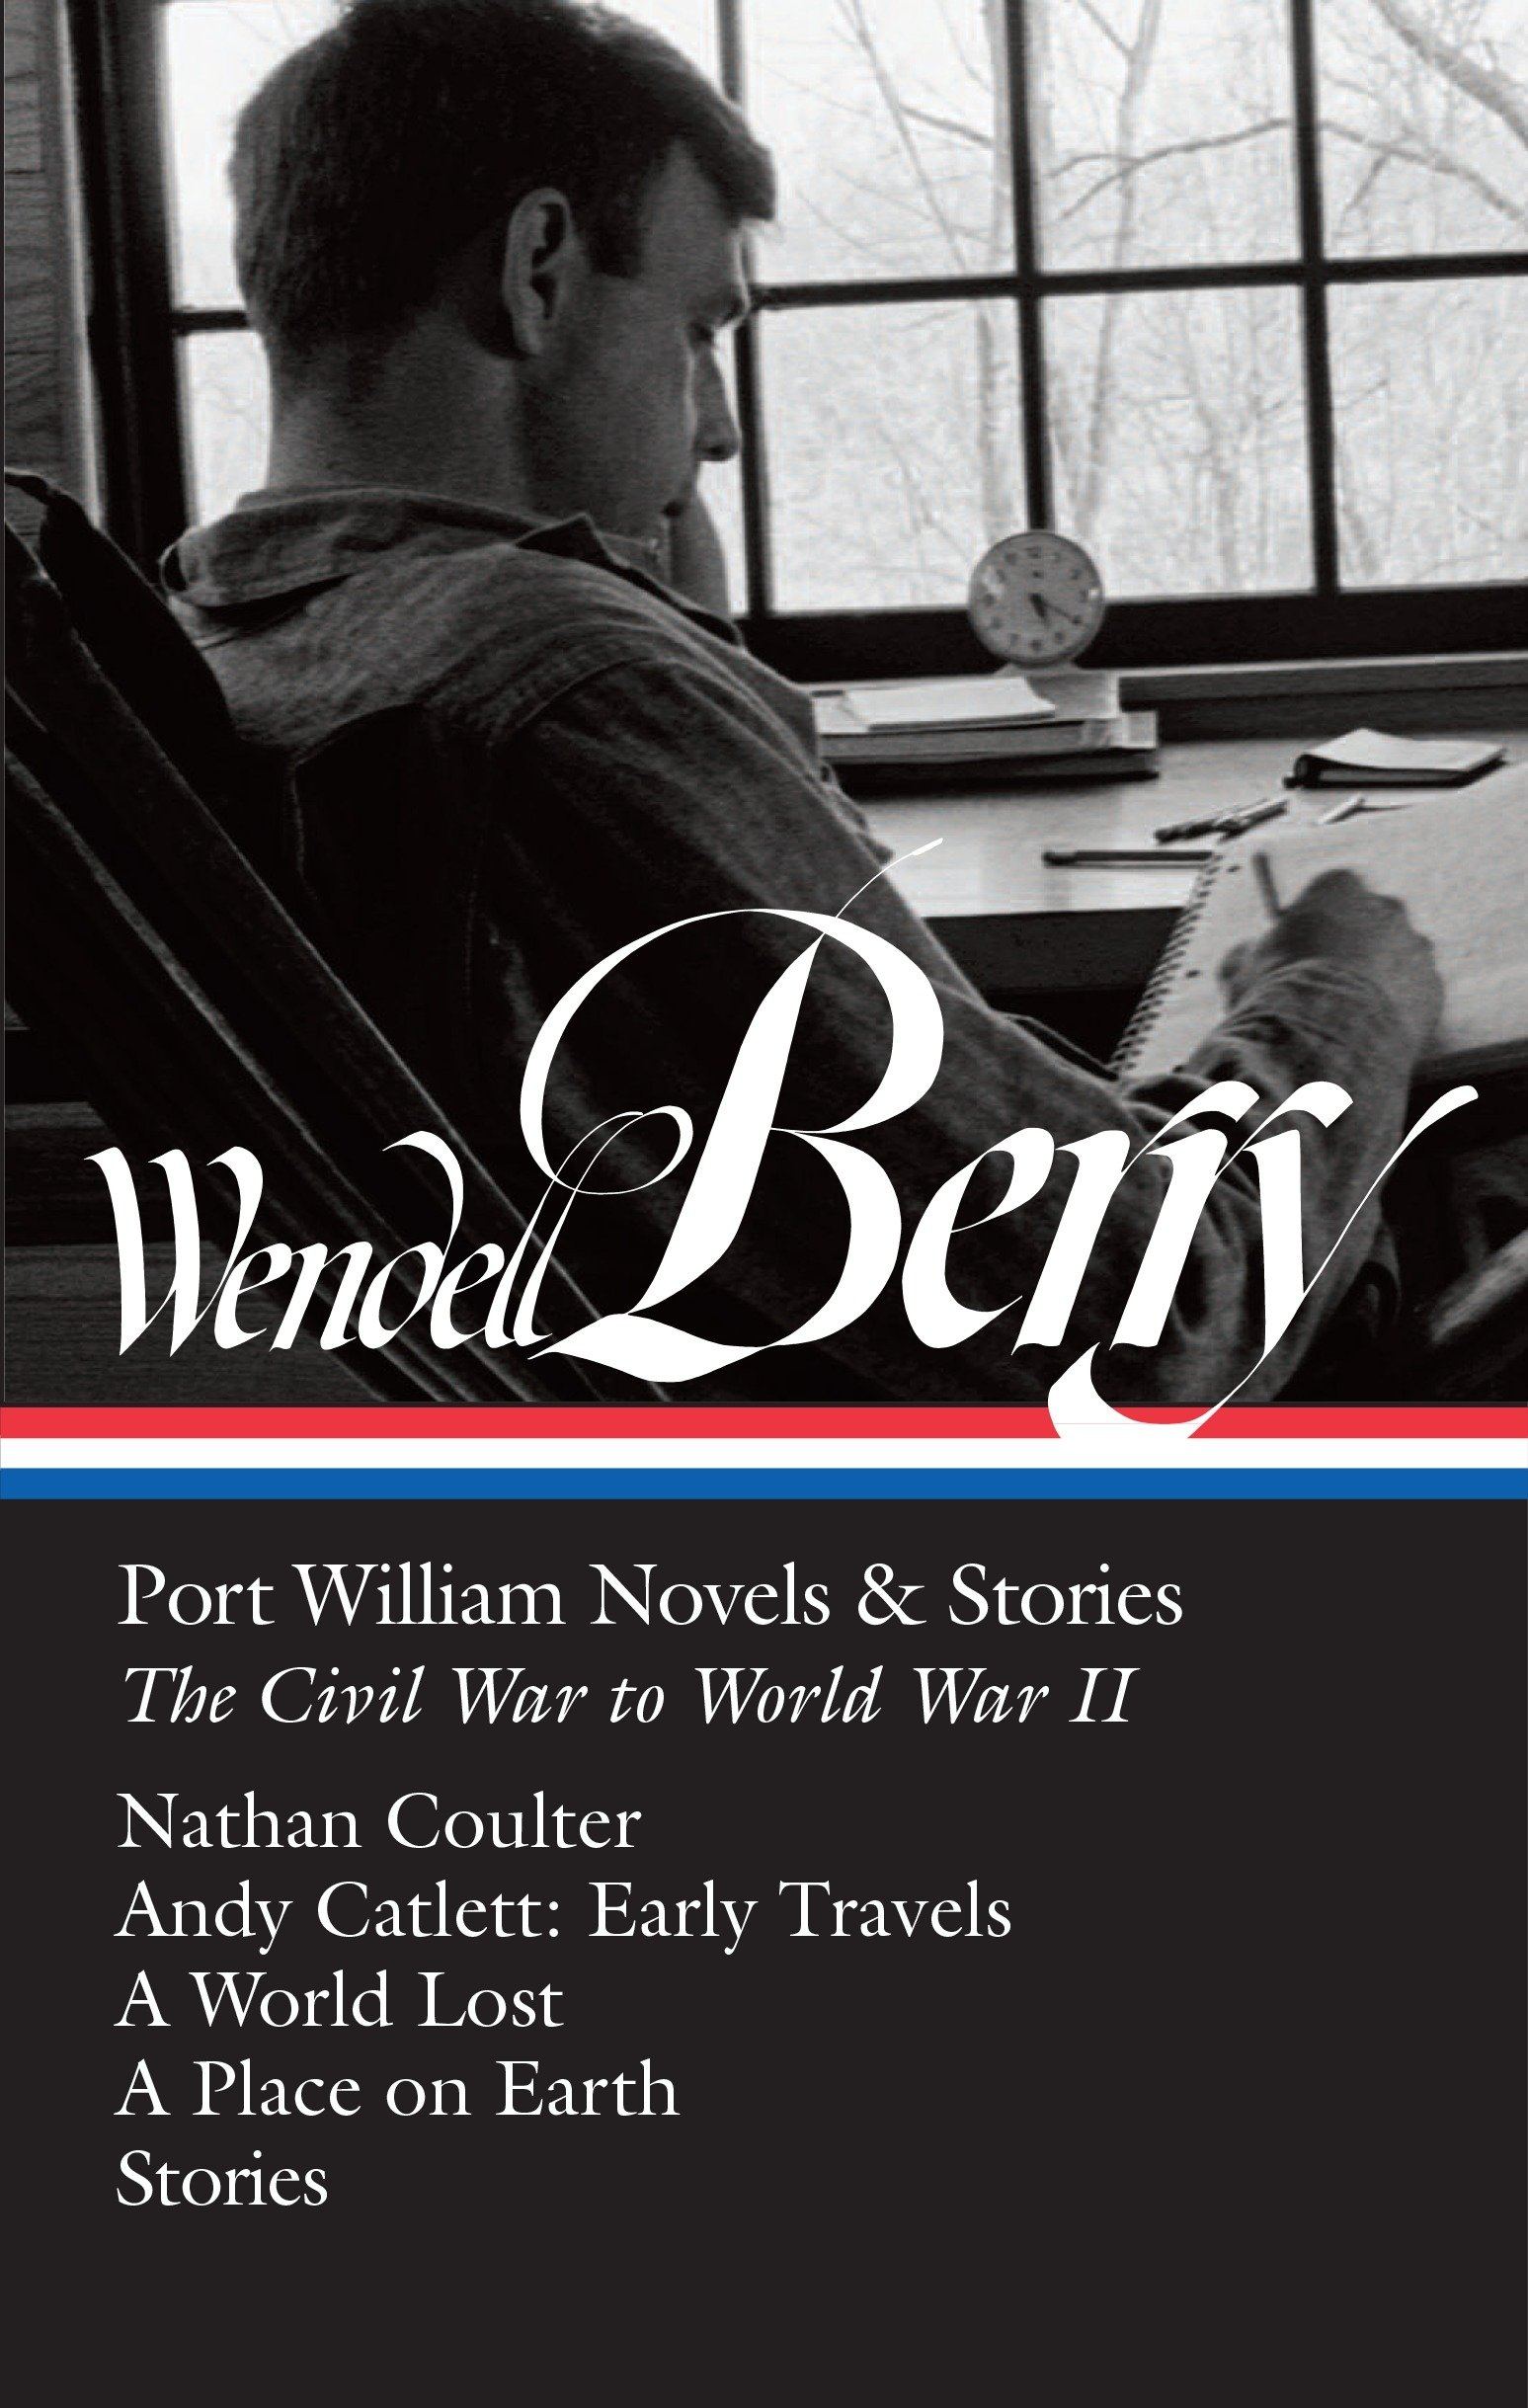 Wendell berry port william novels stories the civil war to world wendell berry port william novels stories the civil war to world war ii loa 302 nathan coulterandy catlett early travelsa world lost on sciox Gallery